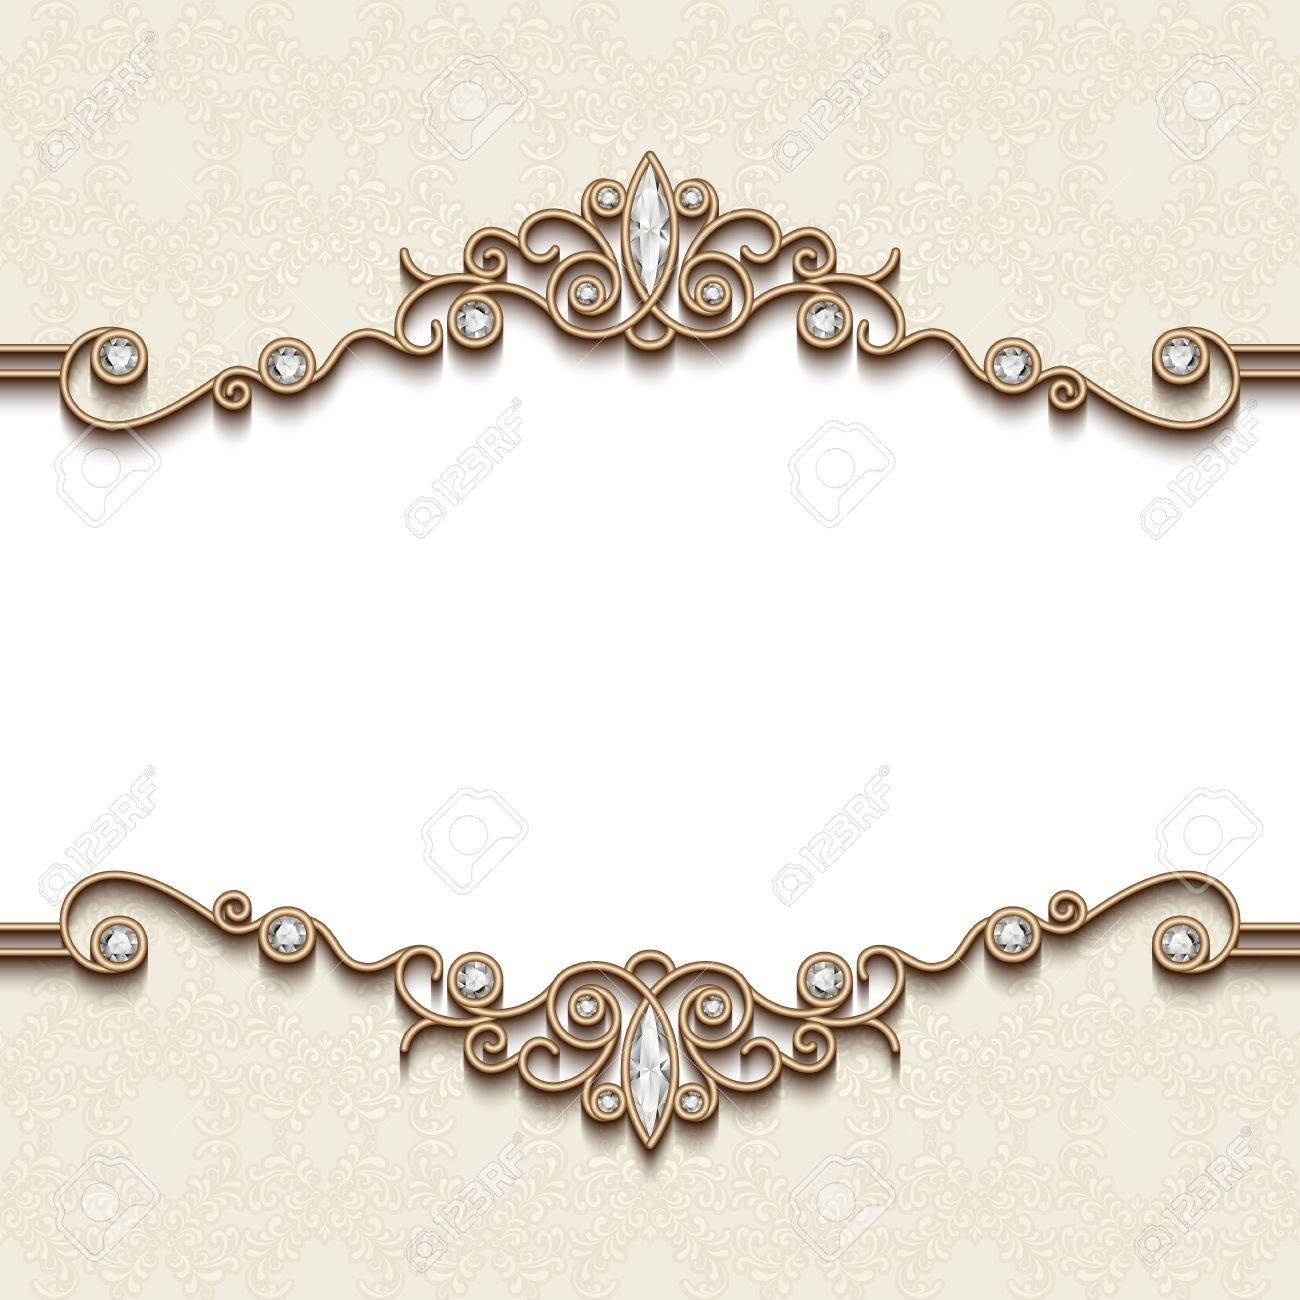 Vintage gold frame on white, divider element, elegant background with jewelry borders - 56298811